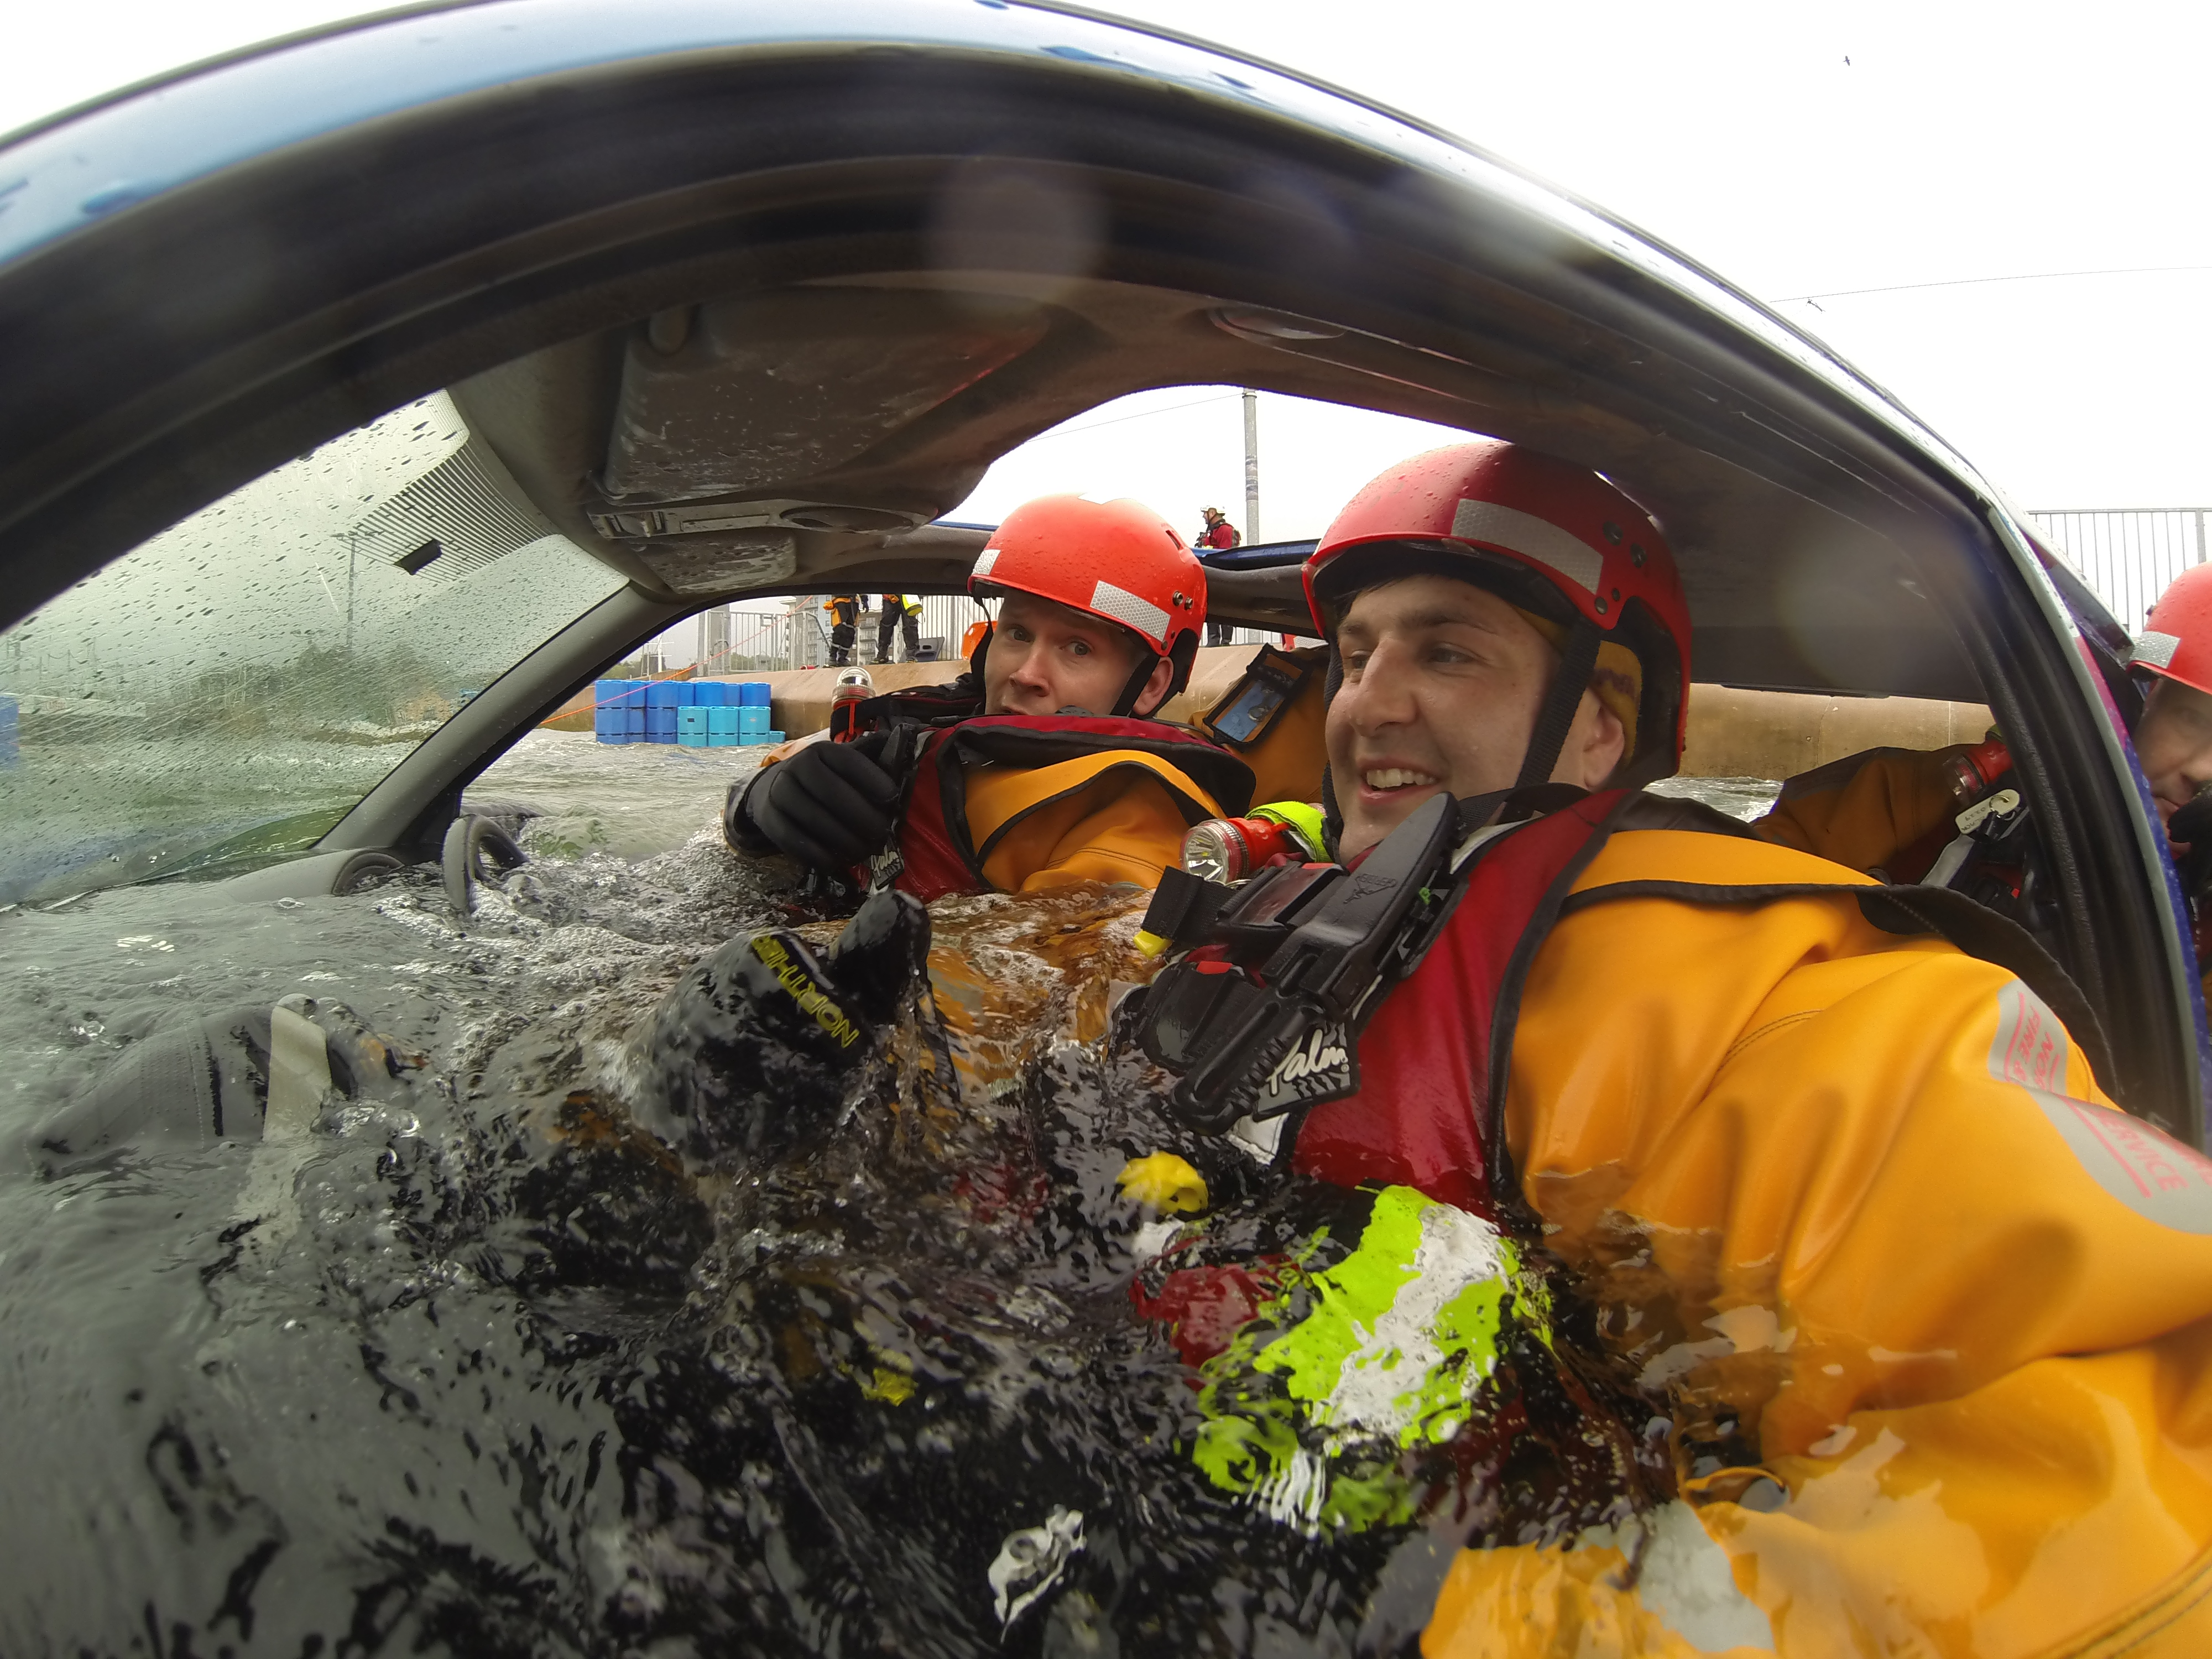 Rescues from Vehicles In Water First Responder